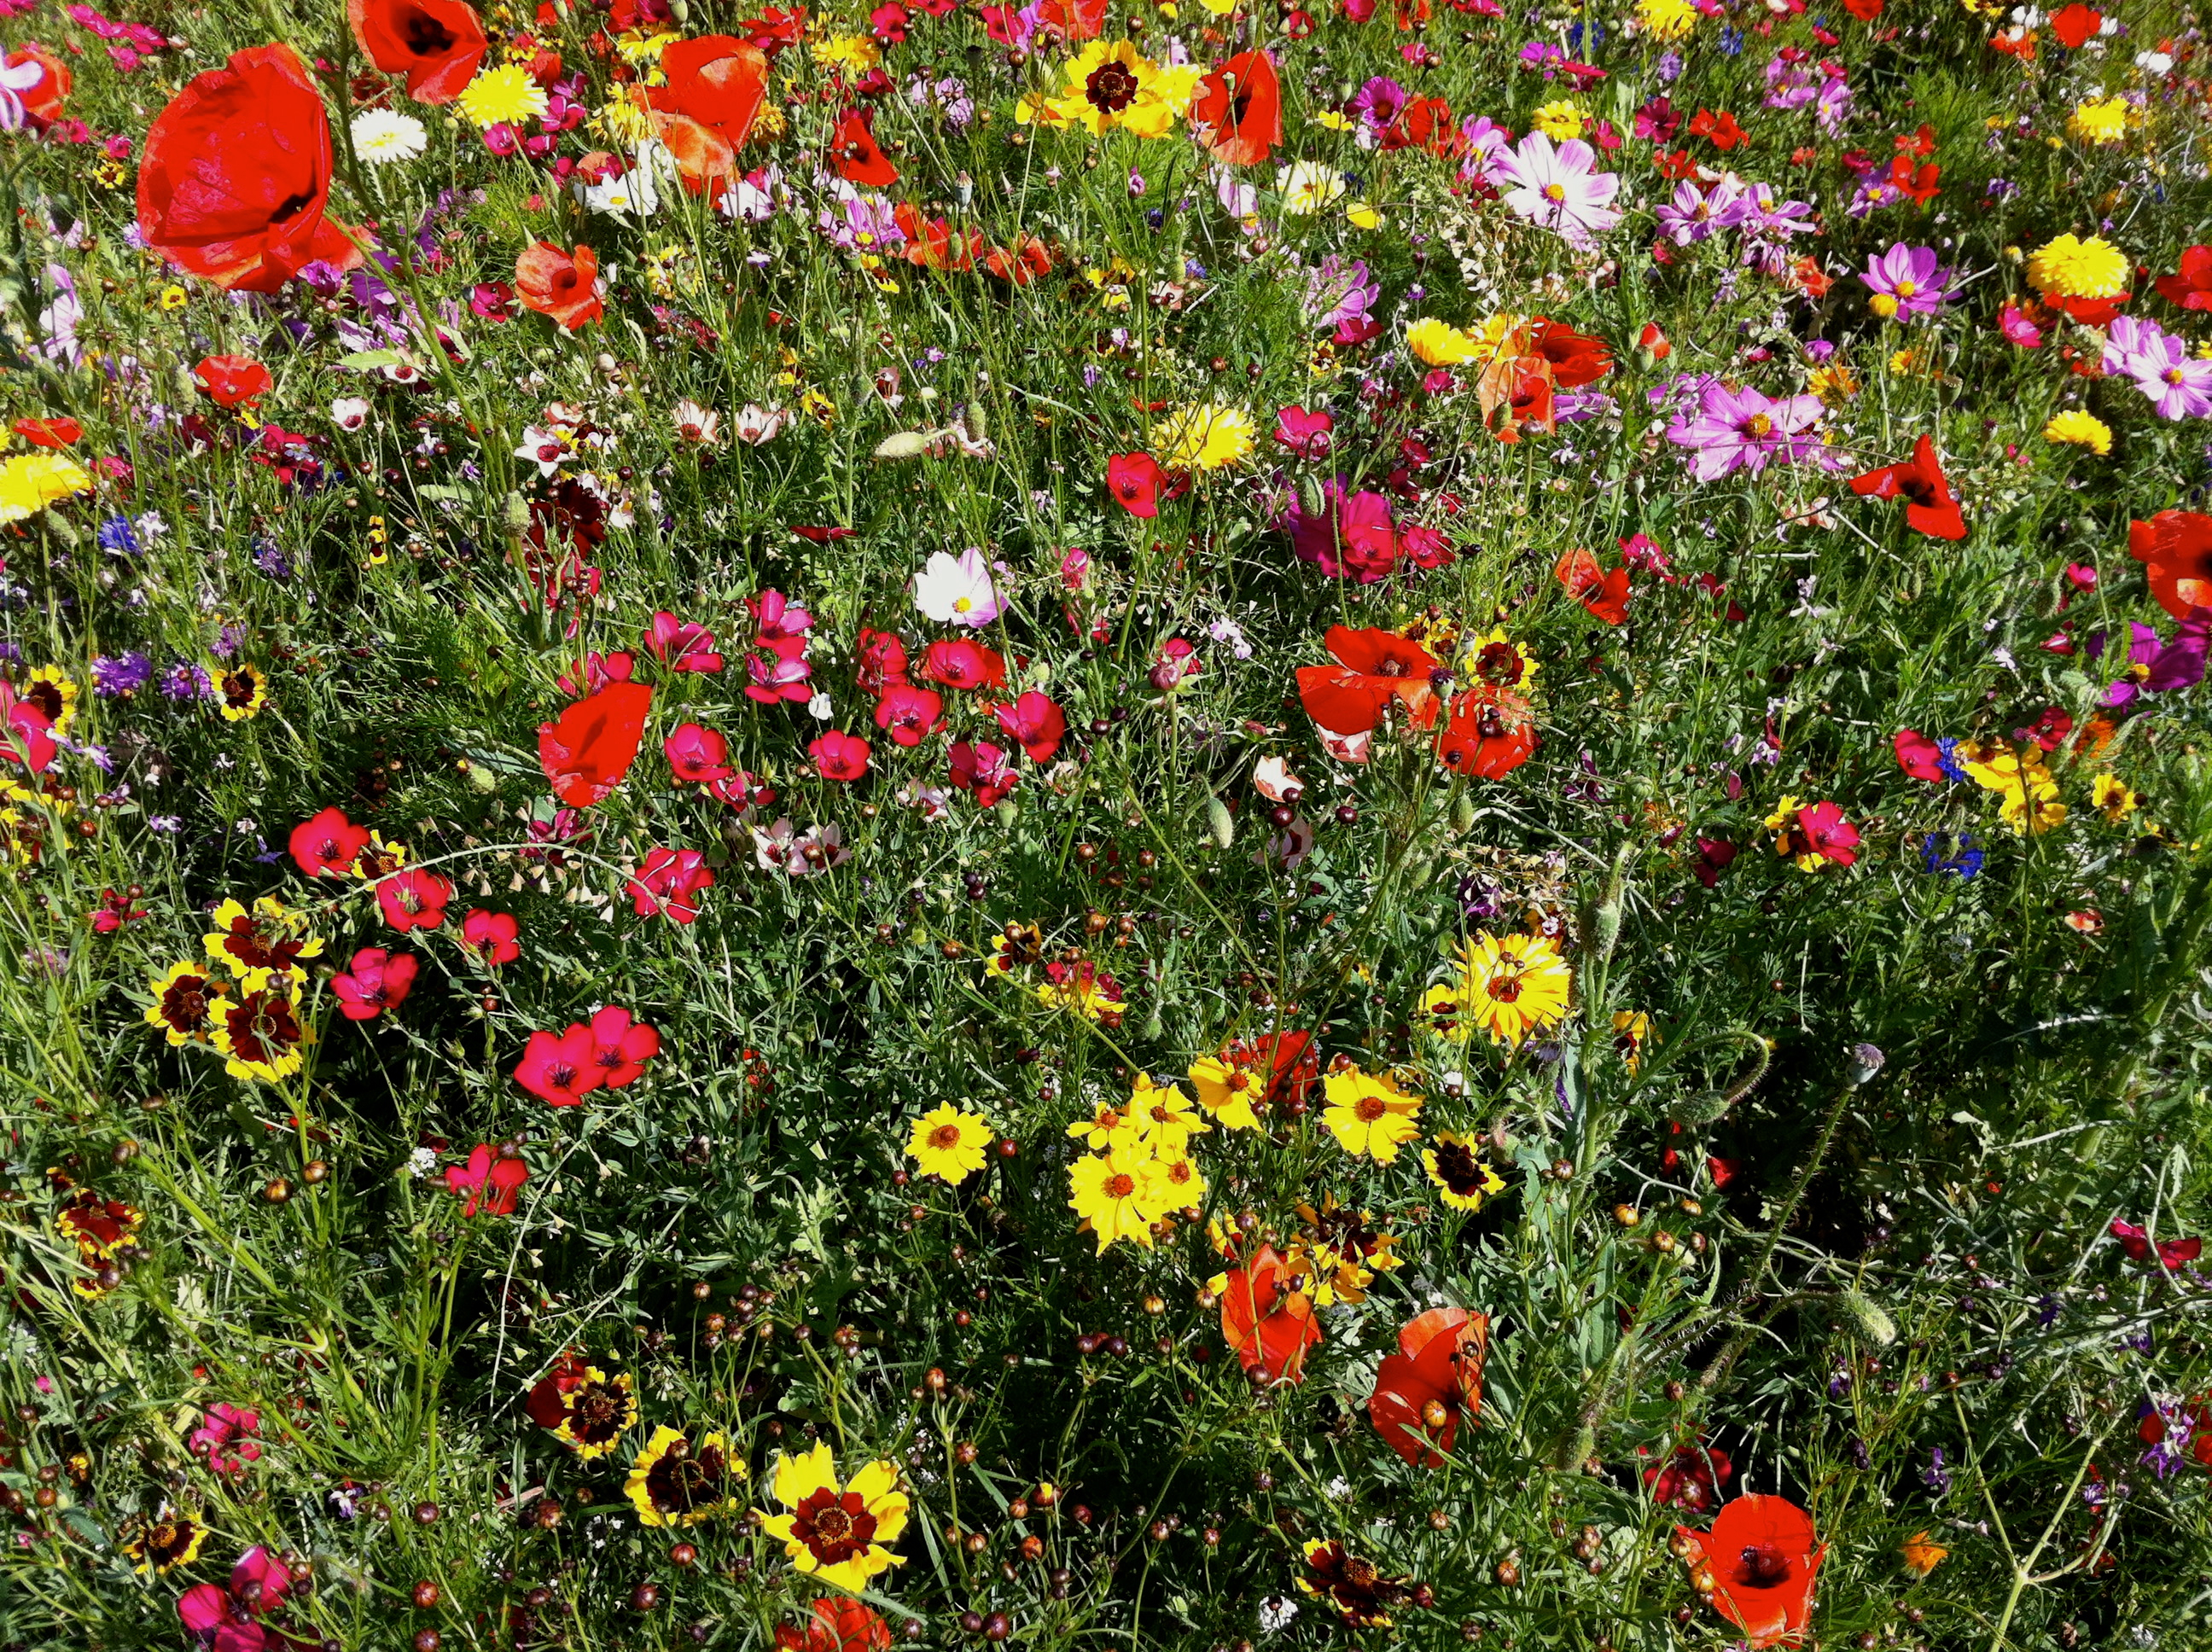 Wild Flowers by KateHodges